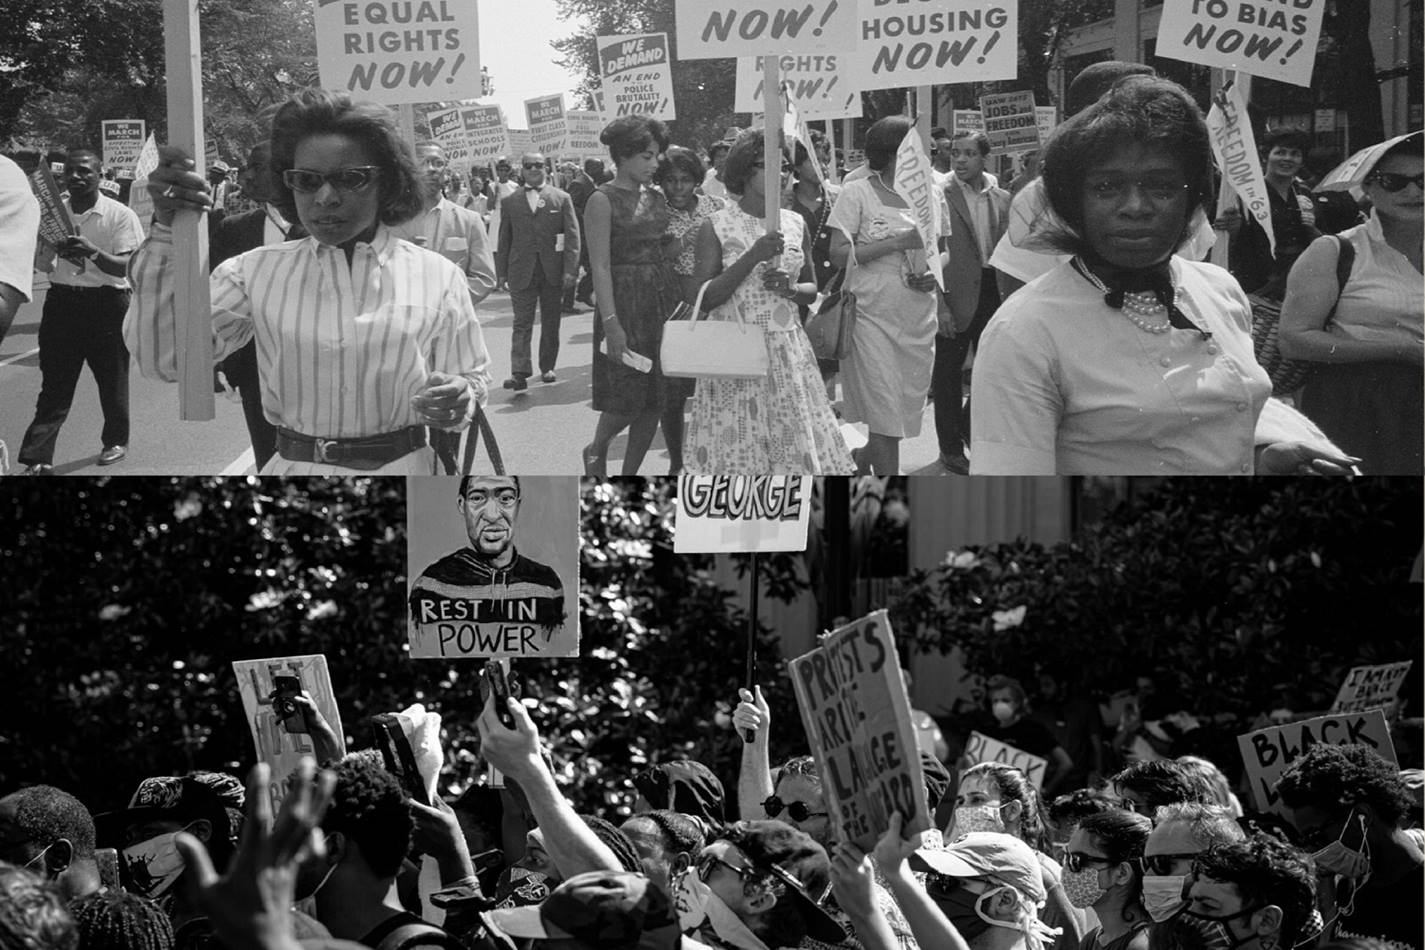 Racial justice: then and now. (Top) March on Washington for Jobs and Freedom in Washington, D.C. on August 28, 1963; photo from Library of Congress. (Bottom) I Will Breathe March on June 4, 2020, in Nashville, Tenn.; photo by Chanitra Dreher Photography. Photo illustration by Crystal Caviness, United Methodist Communications